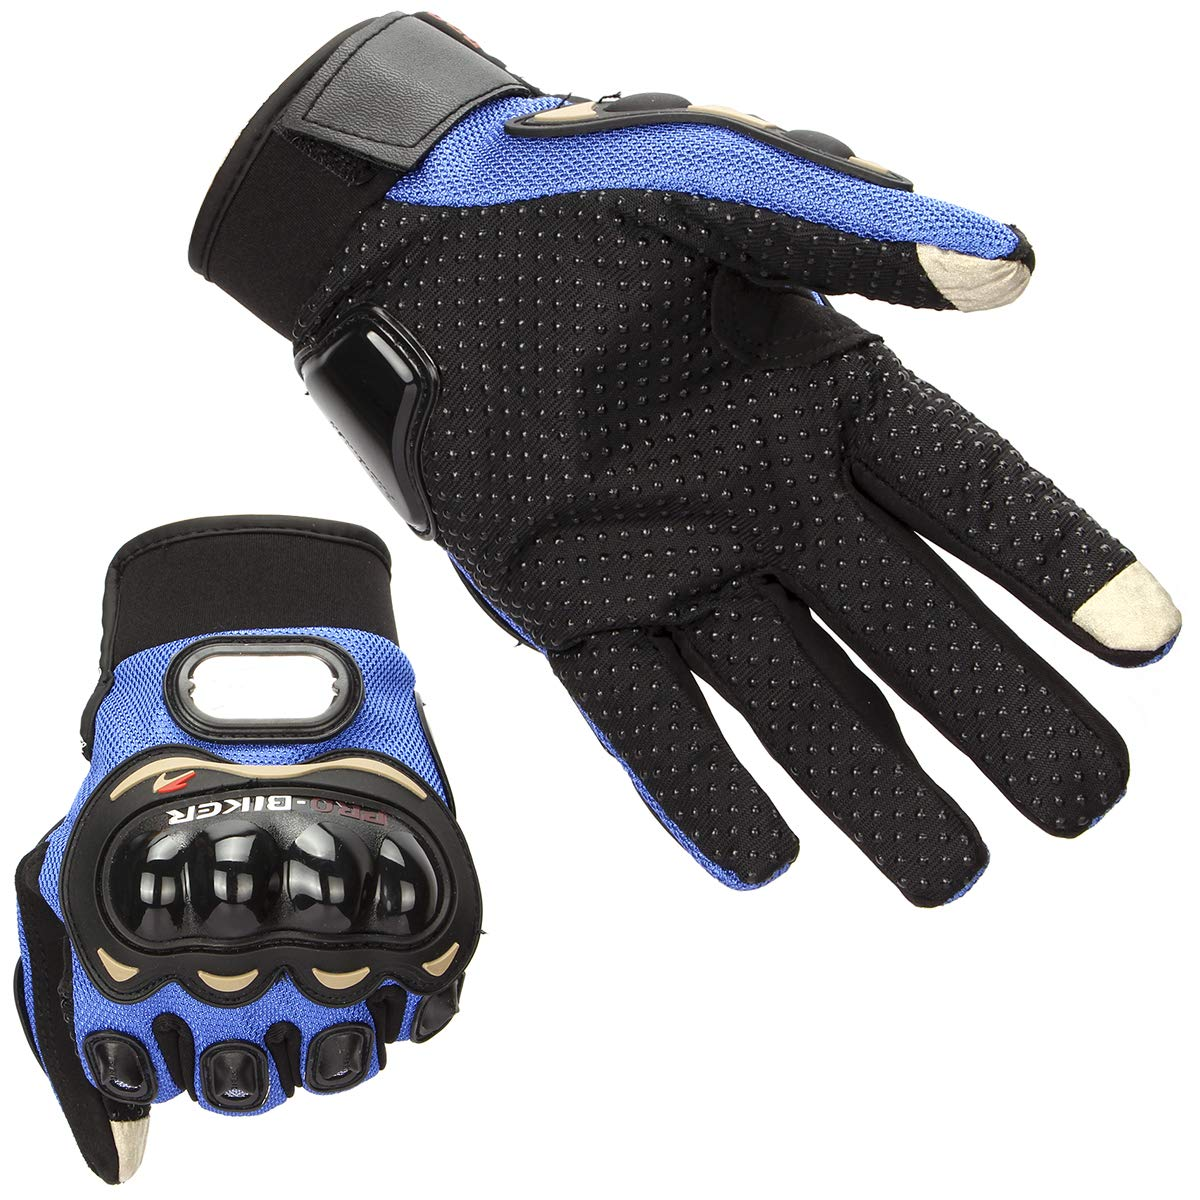 Gants de moto Full Finger Touchscreen Gants Hommes Gants de moto Cyclisme Racing Gants d'équitation de motocross Sports de plein air (XX-Large, Blue)